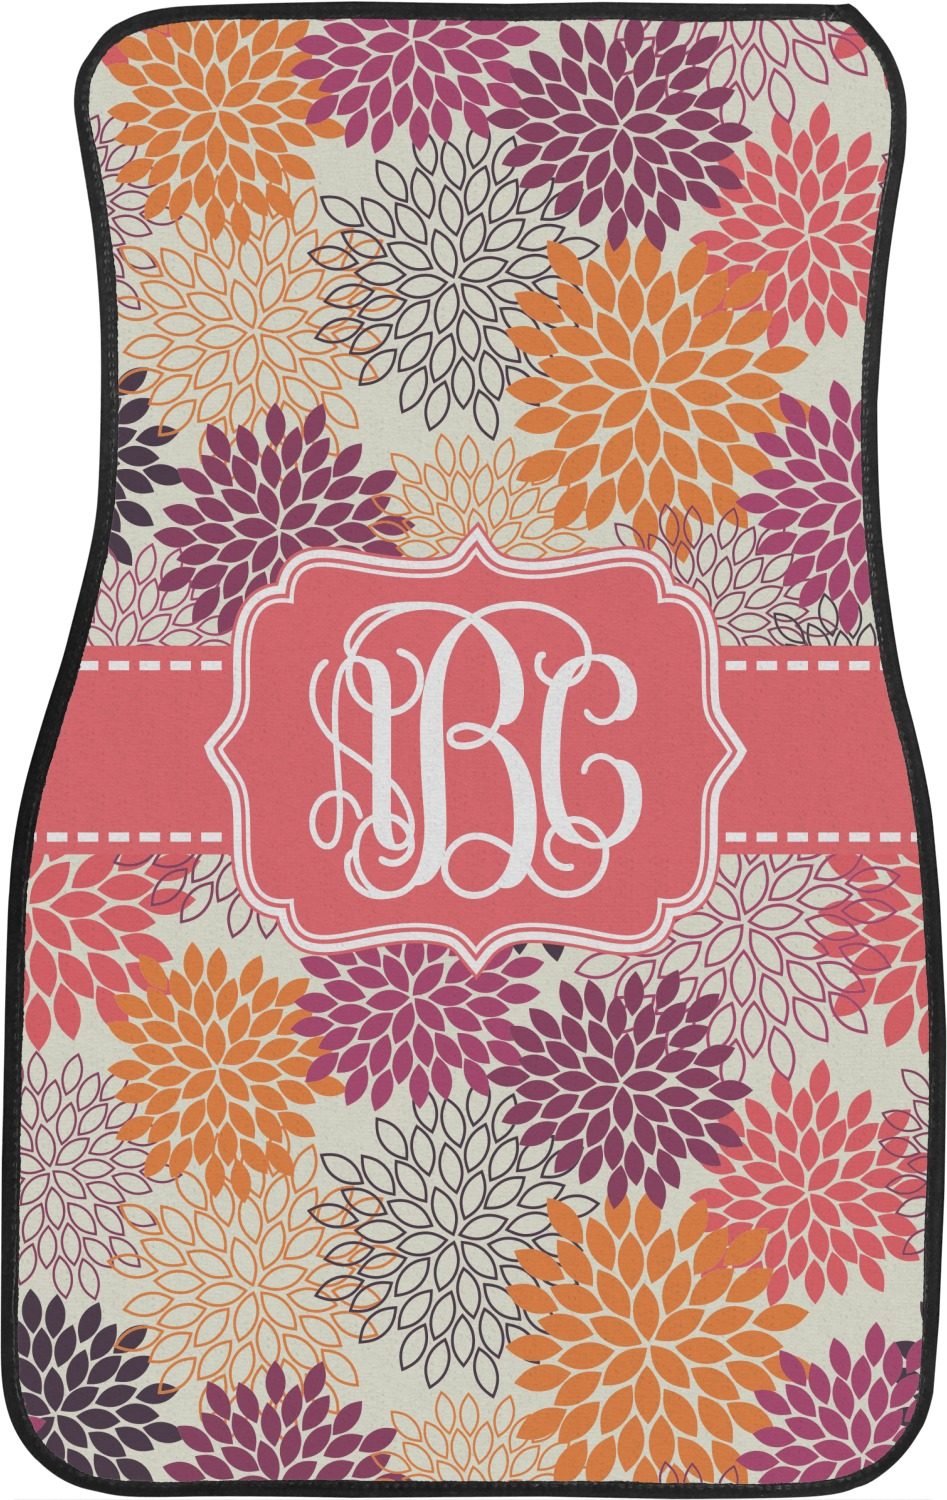 Mums Flower Car Floor Mats Front Seat Personalized